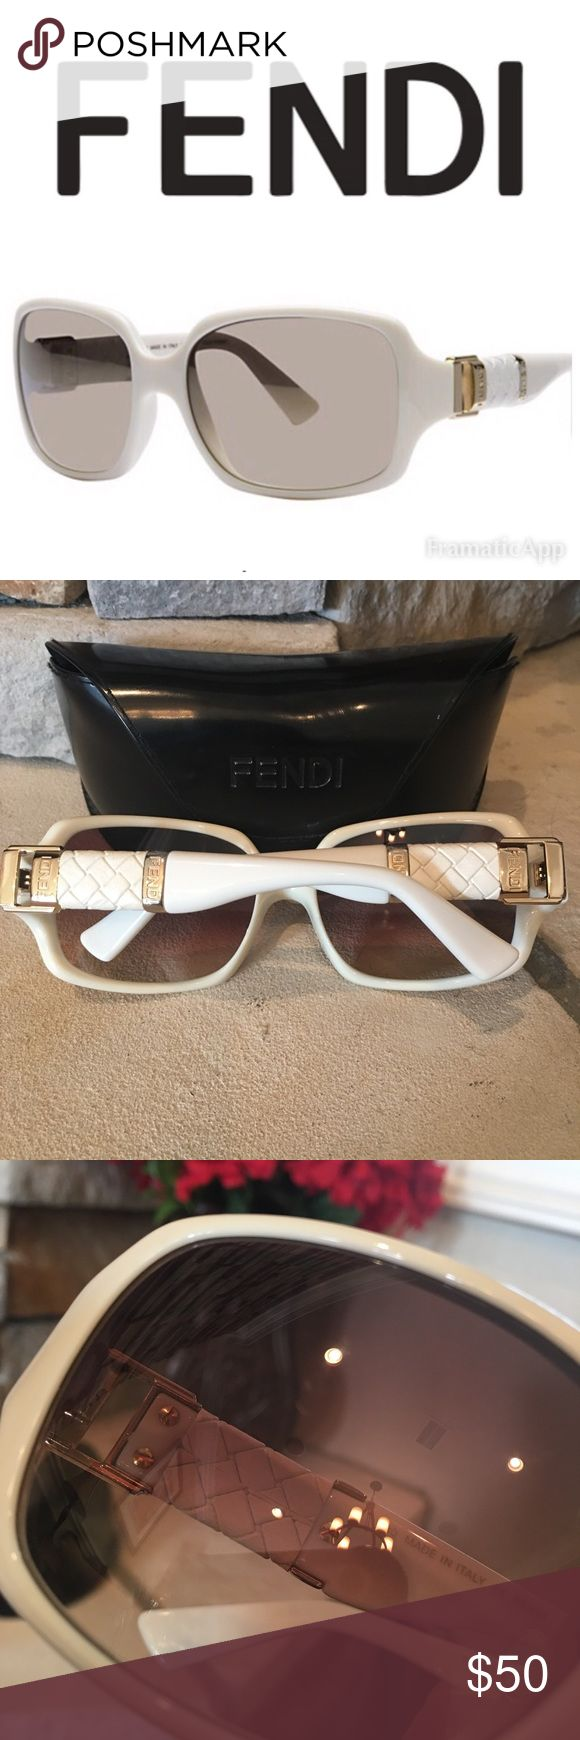 FENDI Sunglasses Beautiful white and gold. In great shape. Tiny nick on one lense, so small i can barely get it in pic. Case included and in great shape. Yes, Authentic 😎 Fendi Accessories Sunglasses